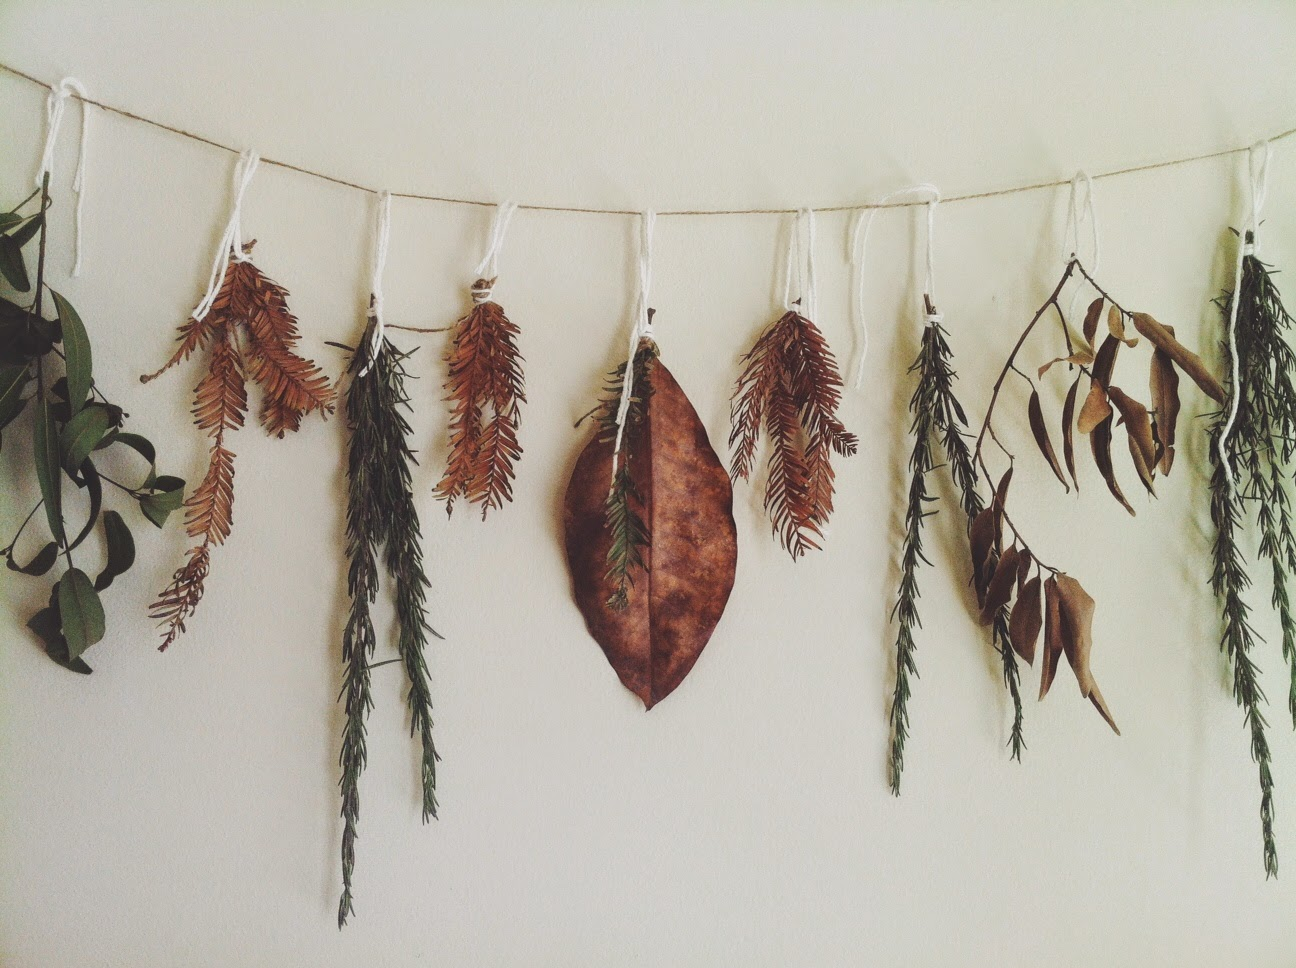 eco-friendly lifestyle, DIY decoration of nature fragments, dry herbs, TLV Birdie blog, instagram blogging tips, decor in kinfolk style, fall decoration